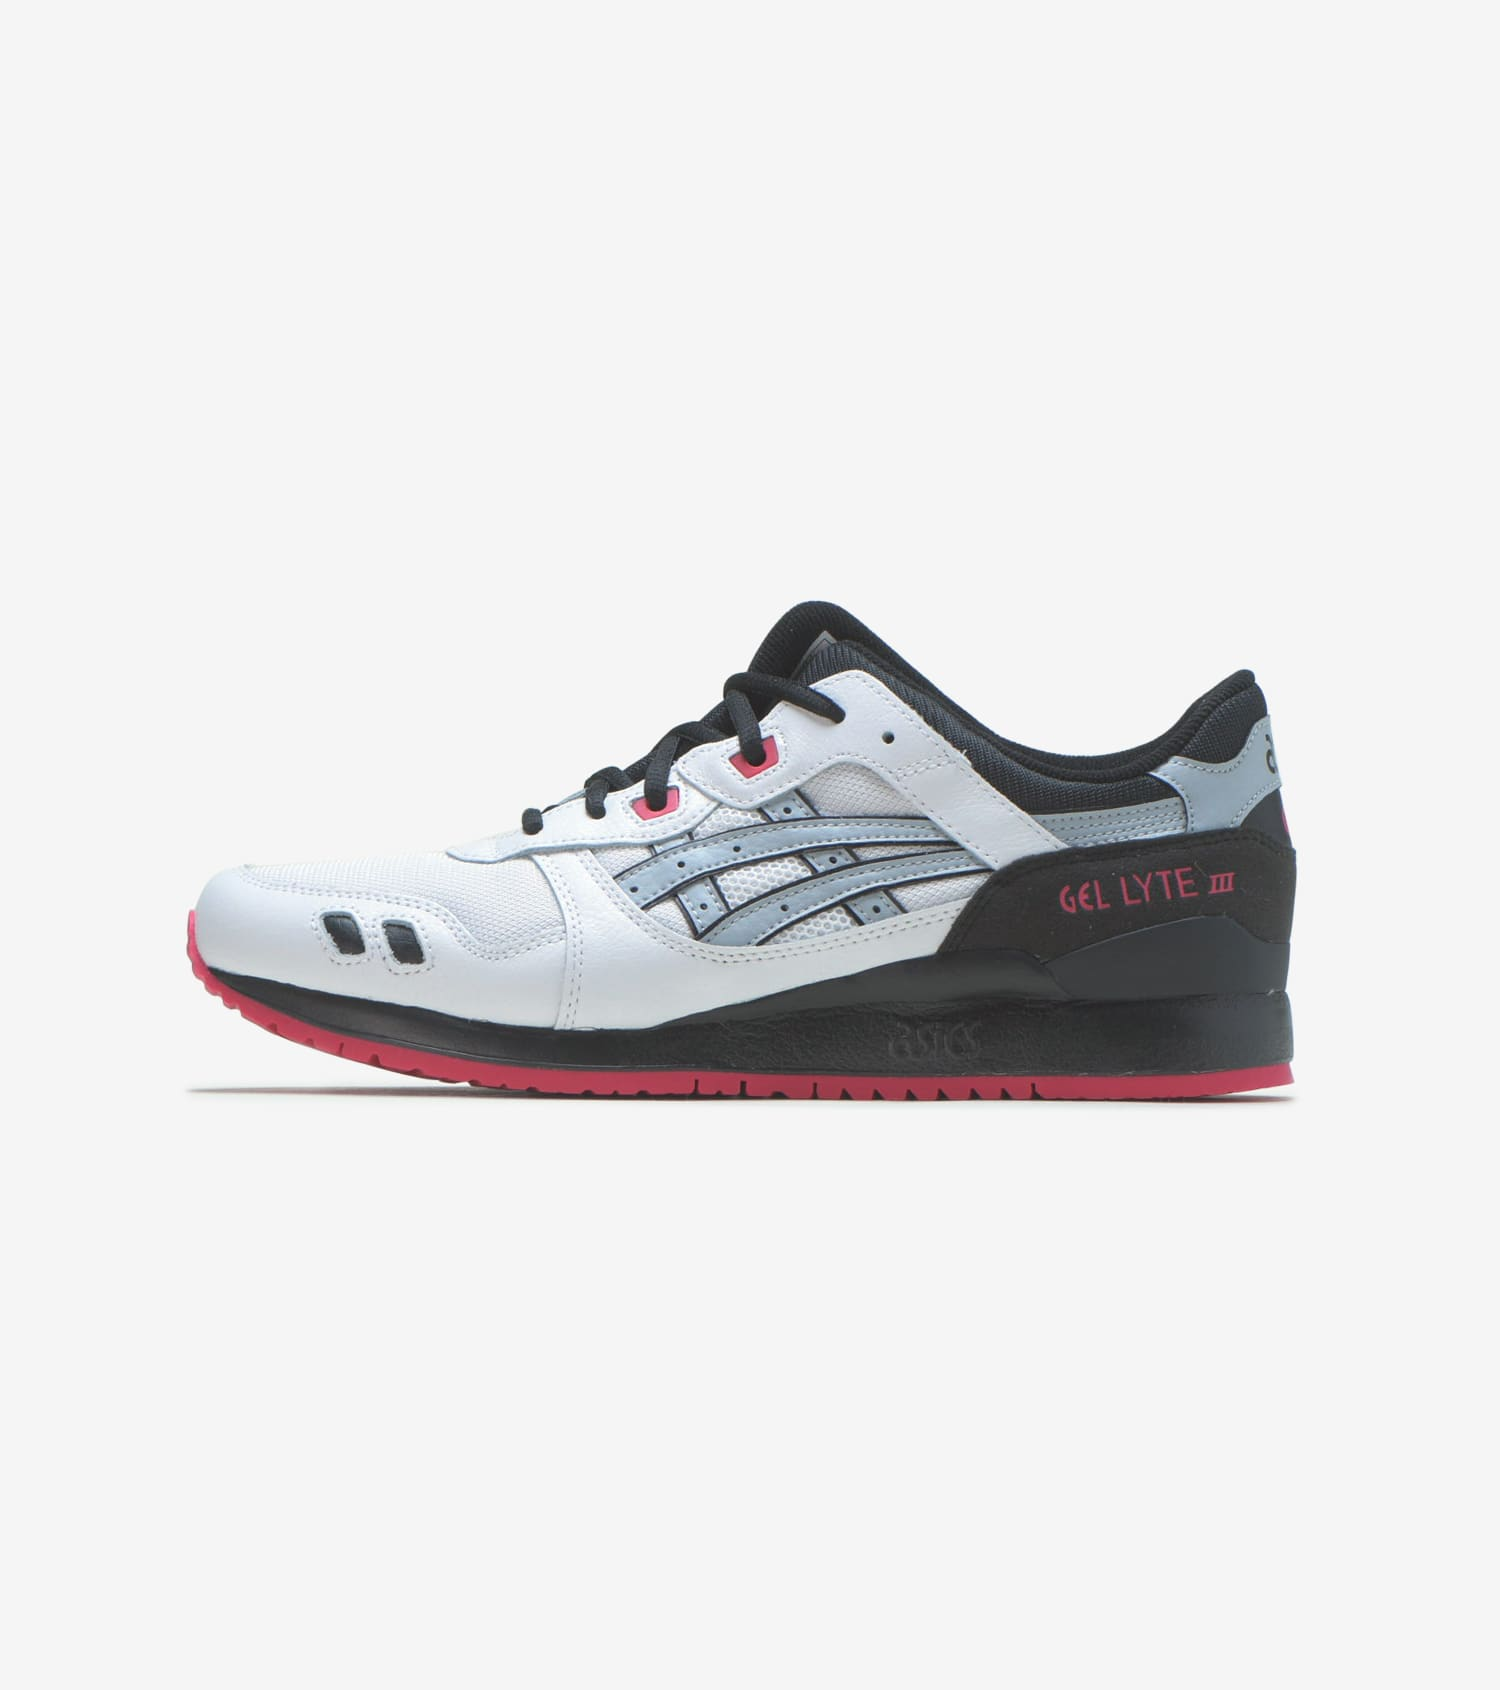 the best attitude c0c9c a36f4 Gel Lyte III